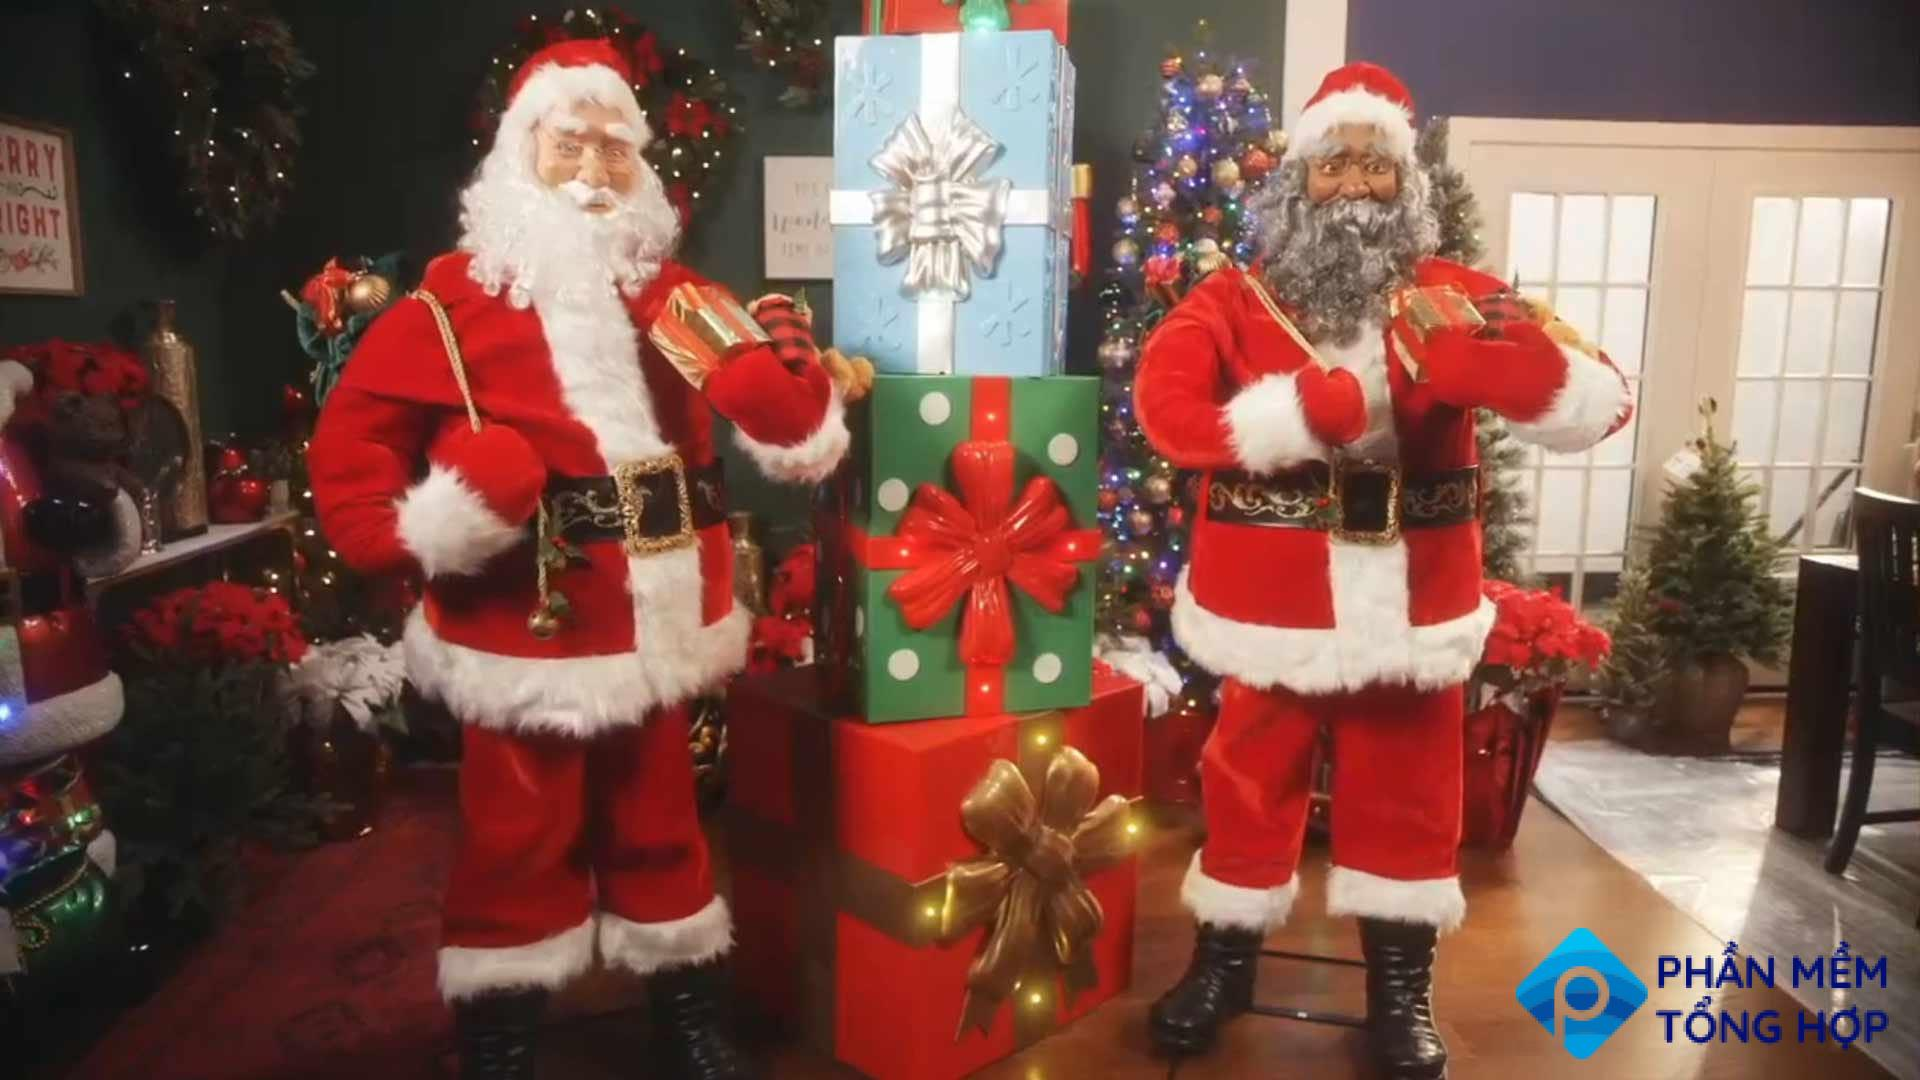 A festive room decorated with life-size Santa Clauses.